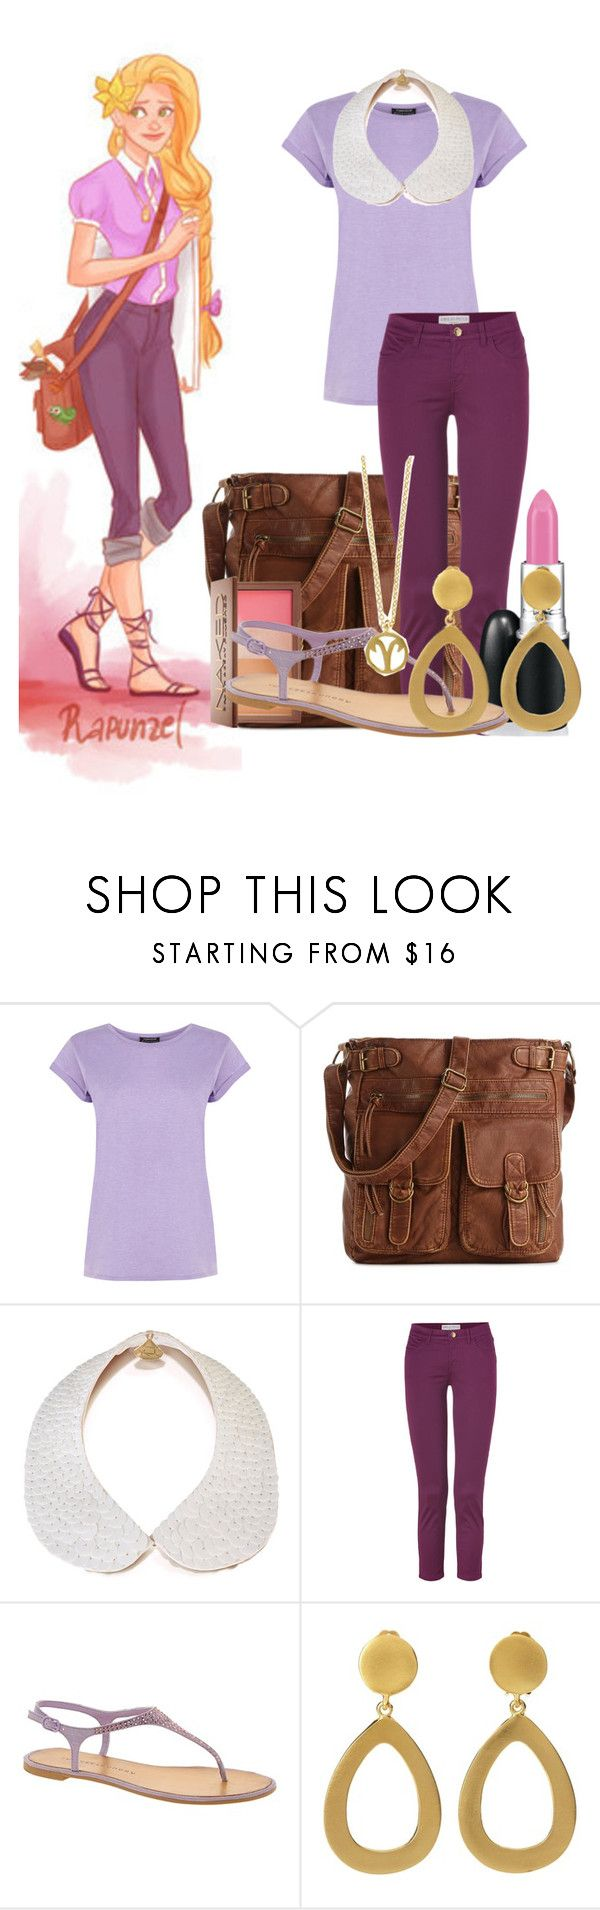 """""""Hipster Rapunzel"""" by thequeenofreading ❤ liked on Polyvore featuring Disney, Warehouse, Mix No. 6, Gemma Lister, Emilio Pucci, Urban Decay, Chinese Laundry and Kenneth Jay Lane"""